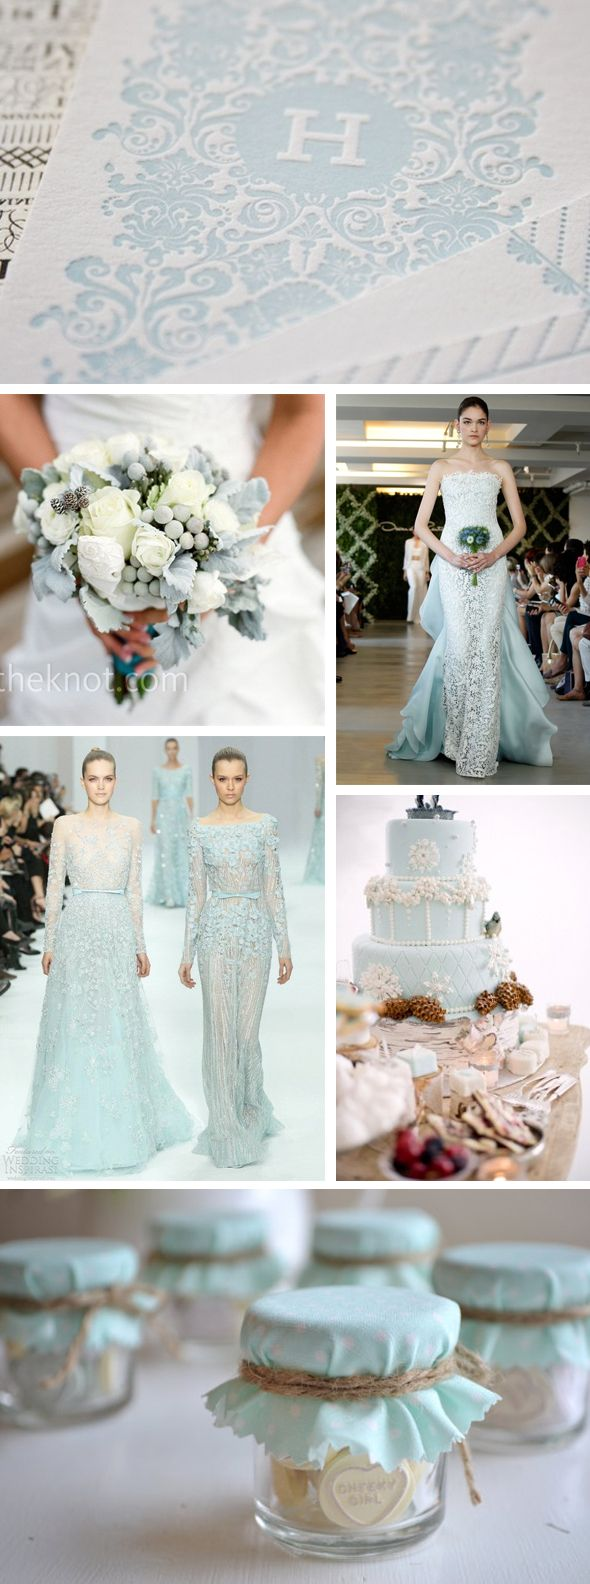 Ice Blue Winter Weddings | The Destination Wedding Blog - Jet Fete by Bridal Bar